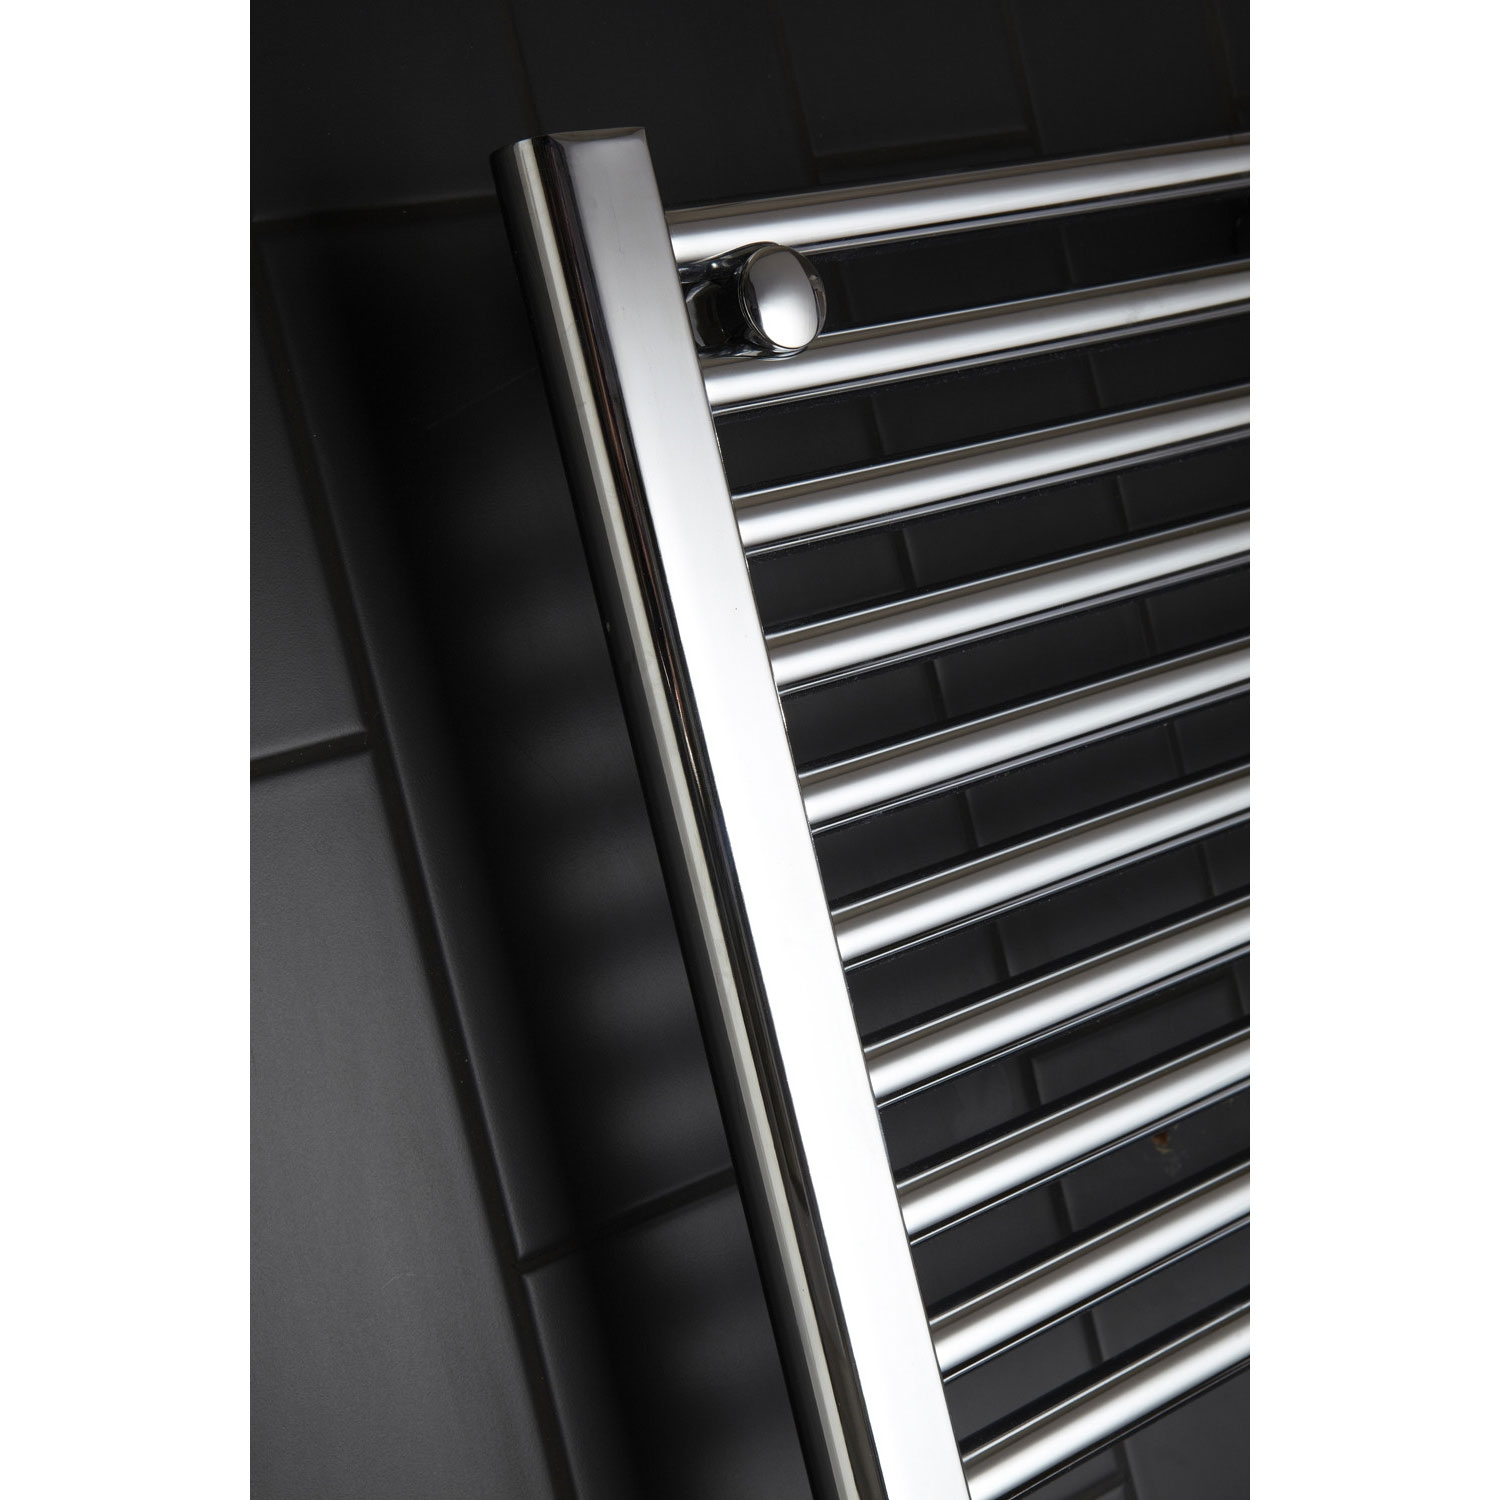 Verona Flat Designer Heated Towel Rail 1100mm H x 600mm W Chrome-1